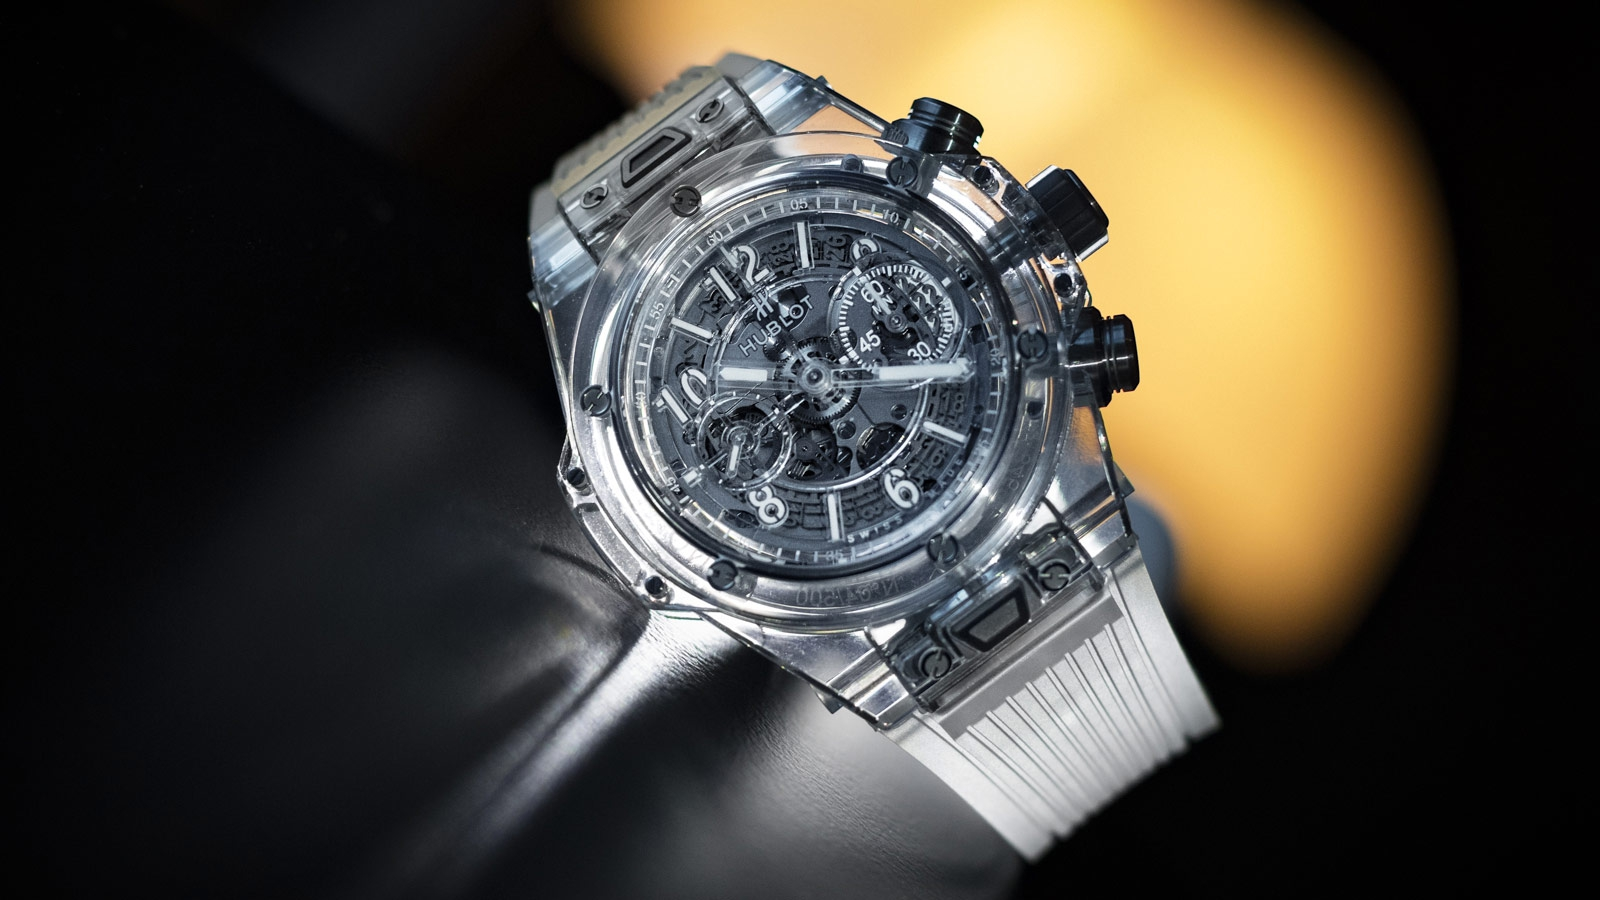 Fall Aesthetic Wallpaper Hublot Created This Incredible Transparent Watch Using